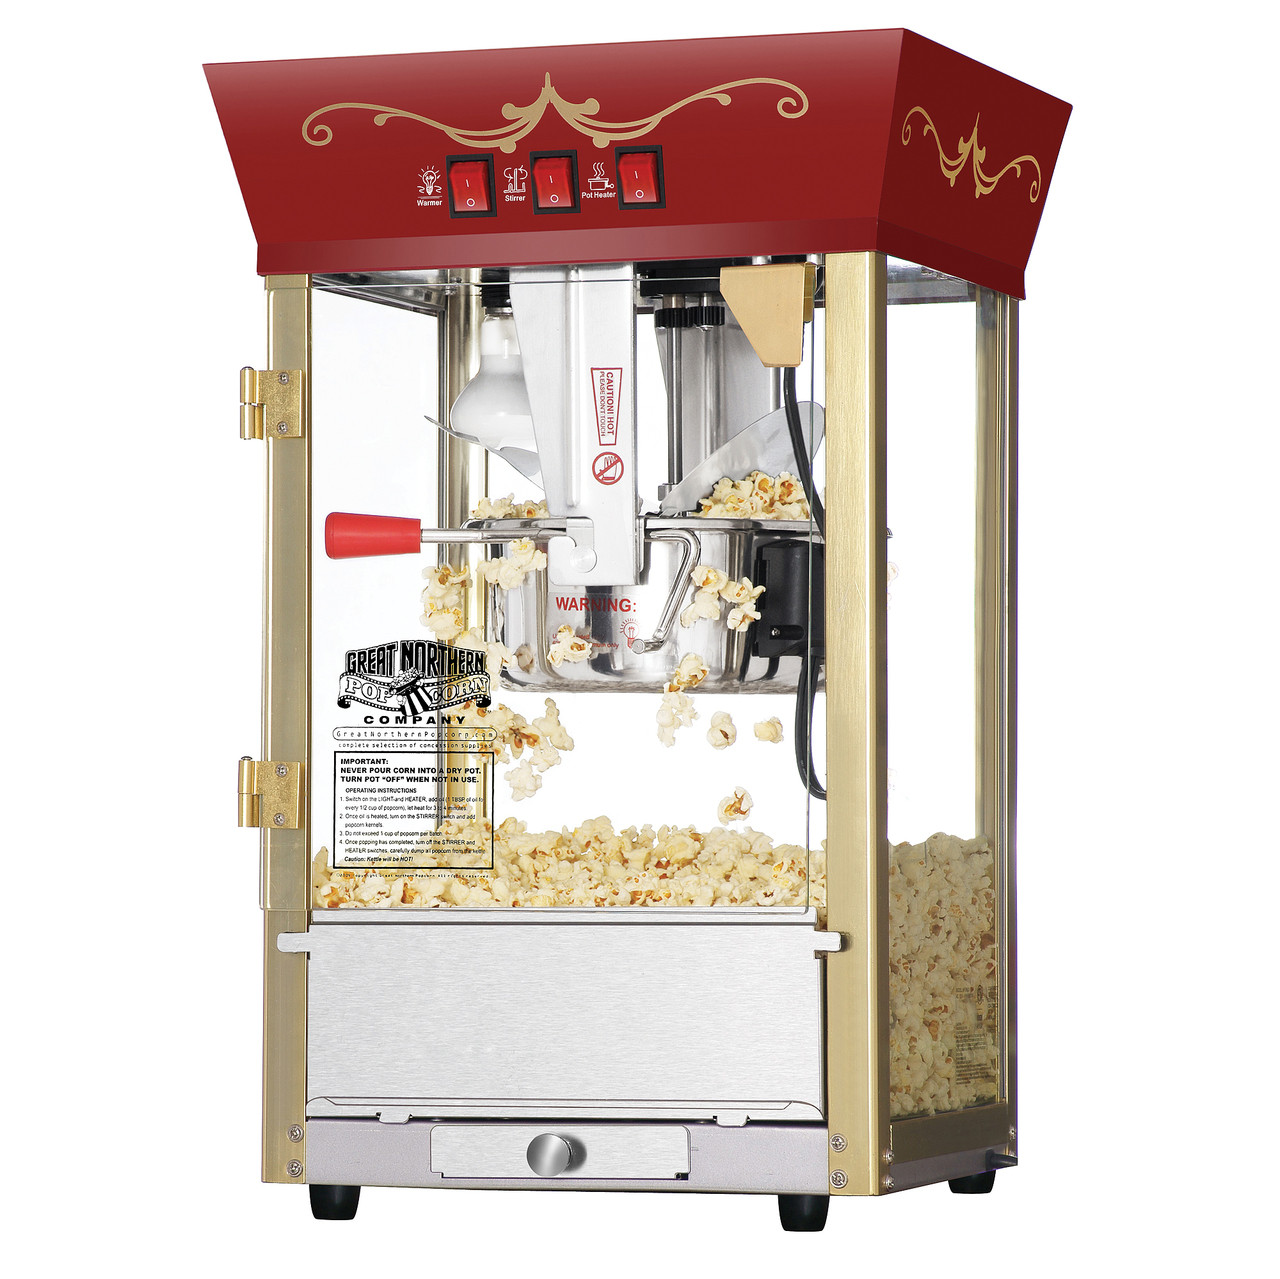 Great Northern Popcorn Red Antique Style Popcorn Popper Machine 8 Ounce Great Northern Popcorn